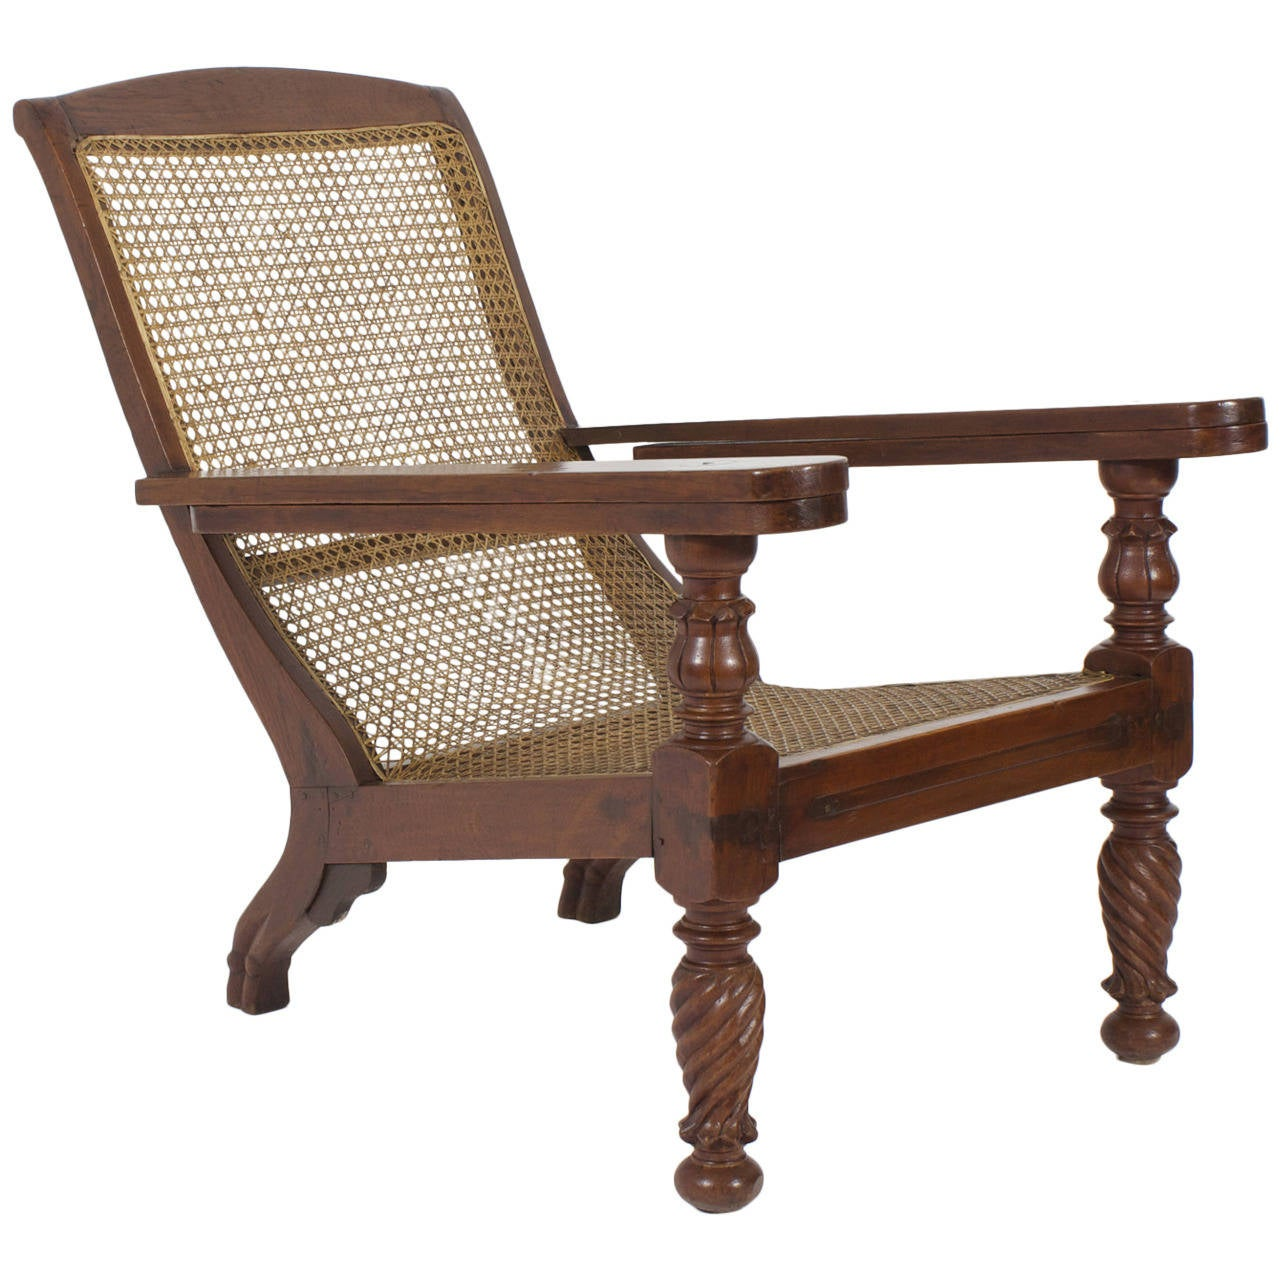 Brilliant 19Th Century Anglo Indian Mahogany Plantation Chair At 1Stdibs Pdpeps Interior Chair Design Pdpepsorg